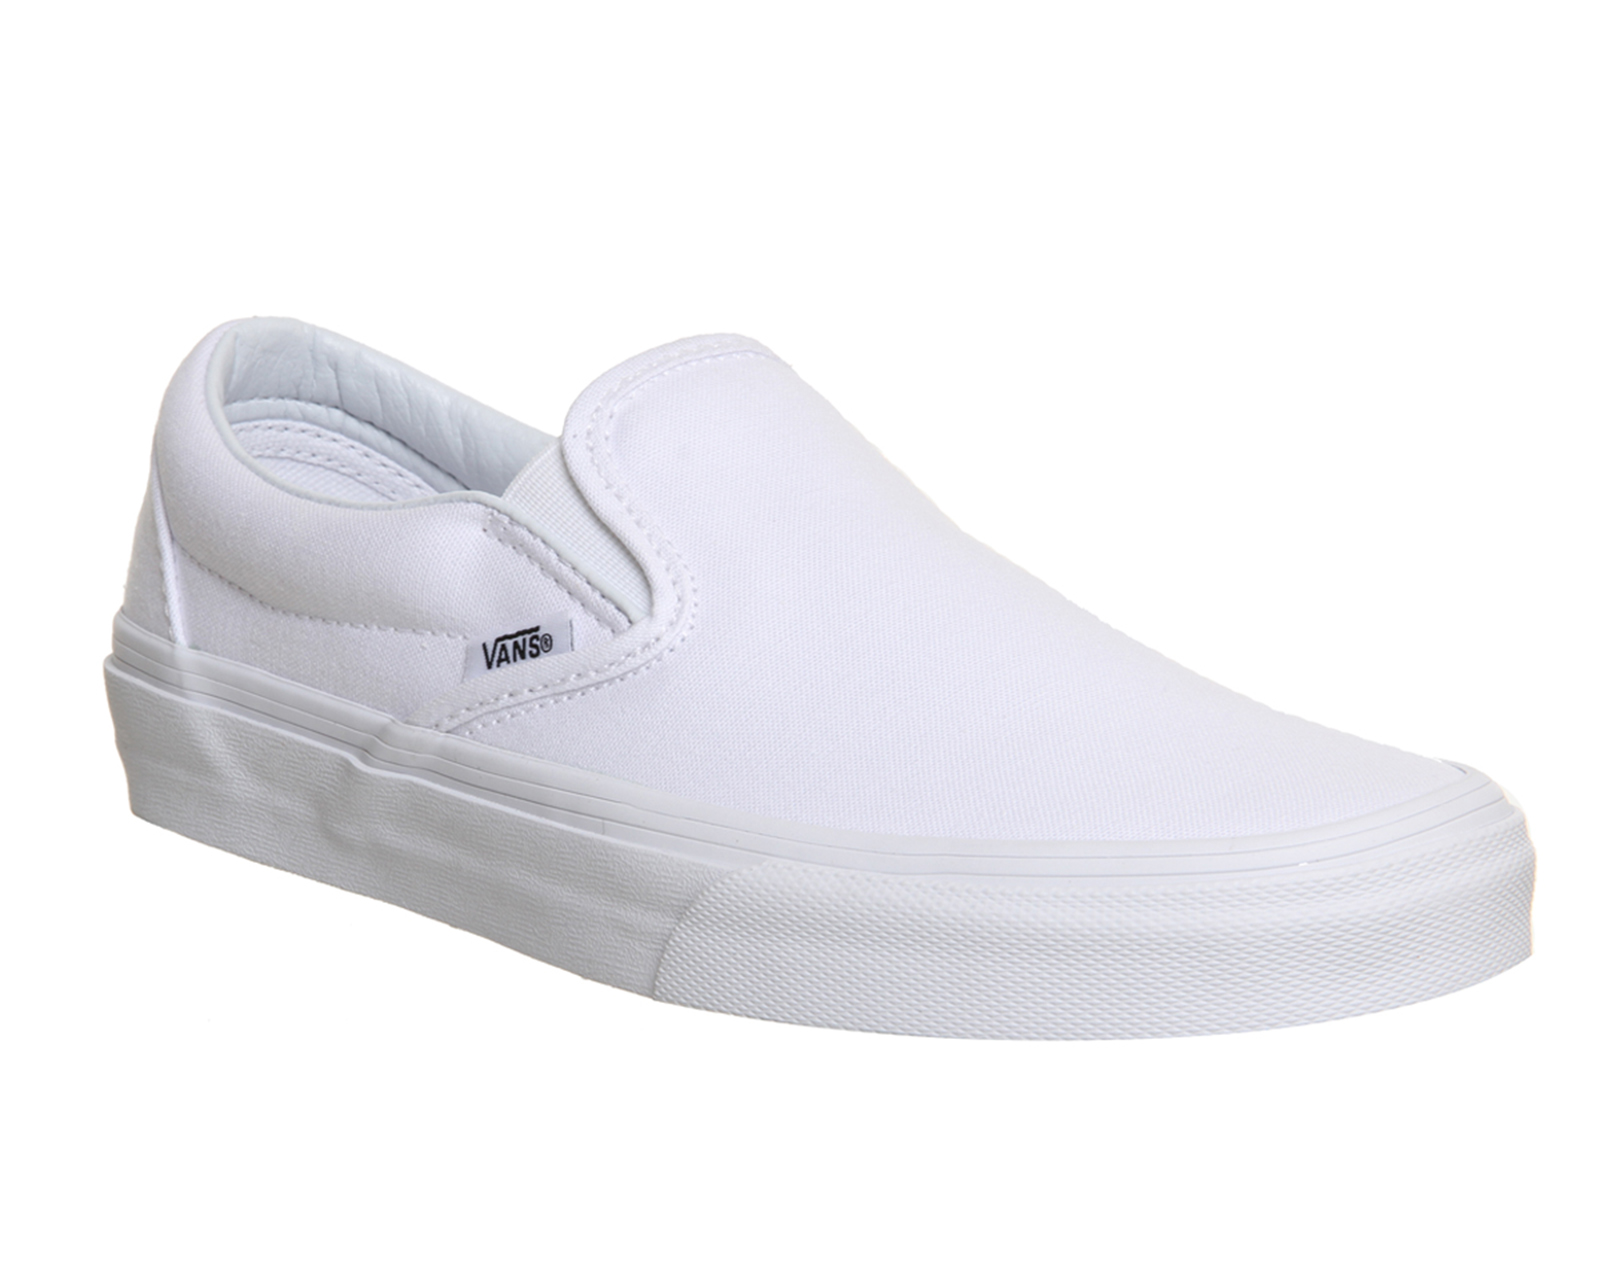 Vans Slip Ons Womens | White Van Slip Ons | Vans Slip on Checkered